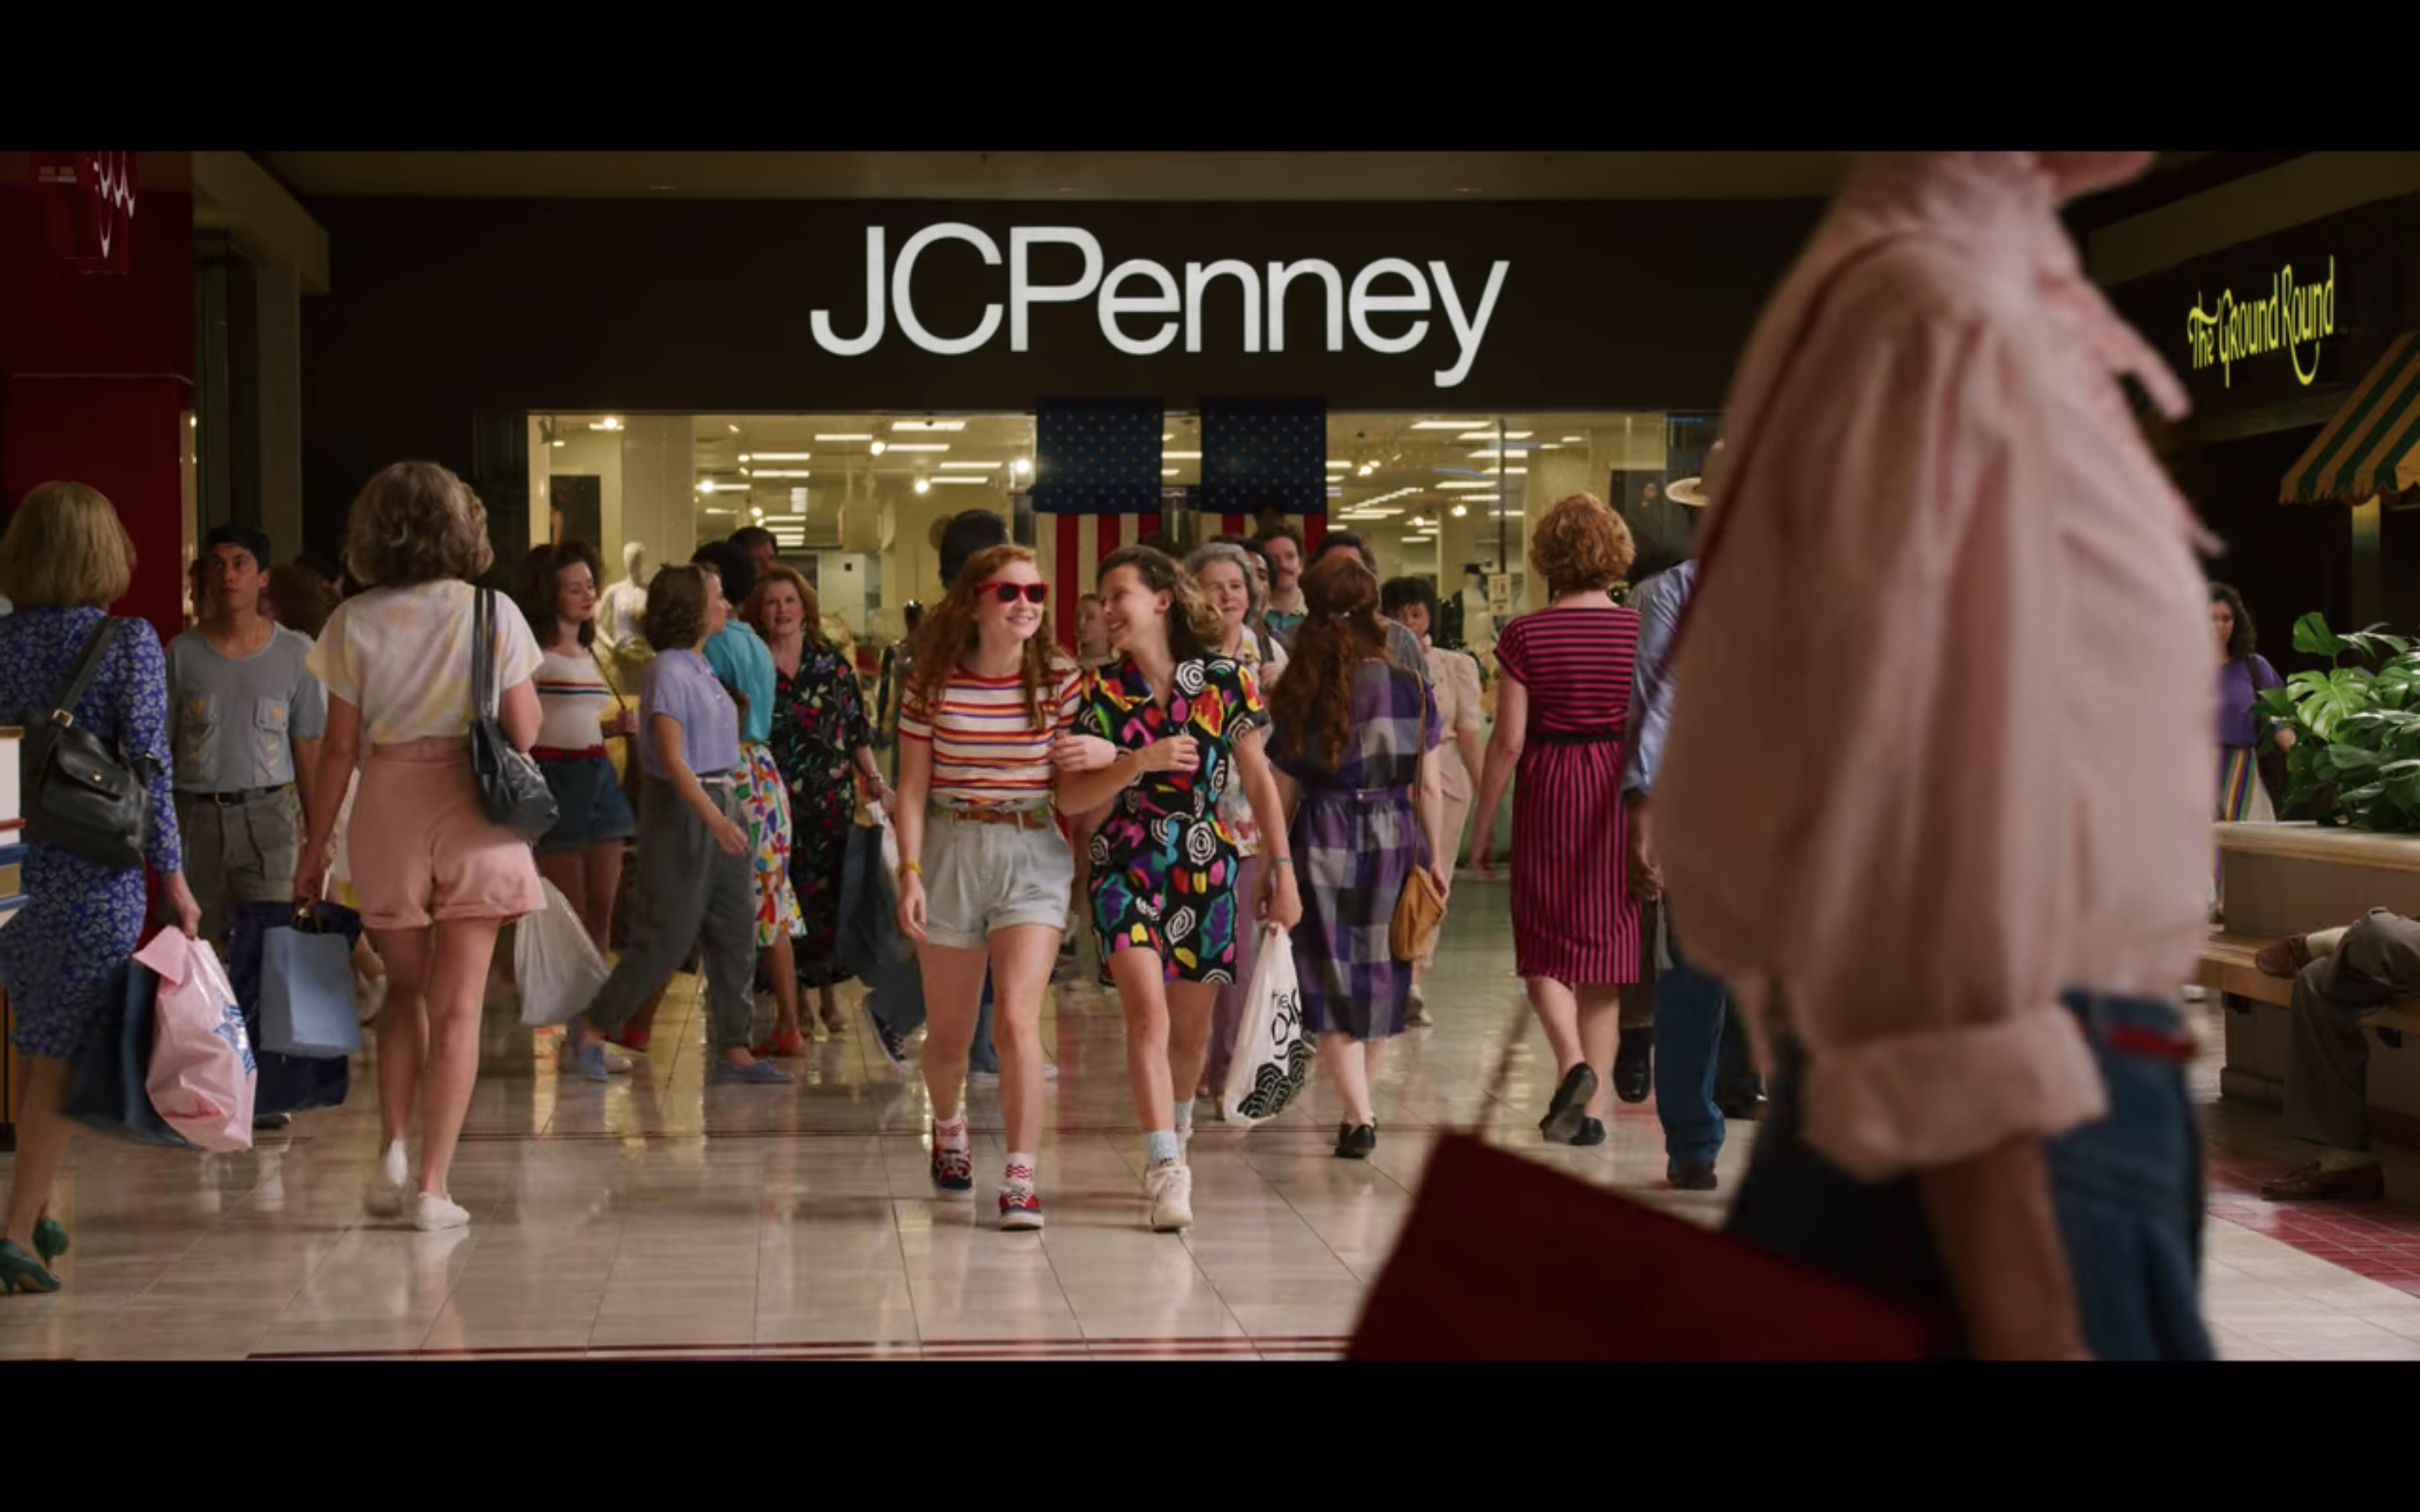 JCPenney 80s logo in Stranger Things 3